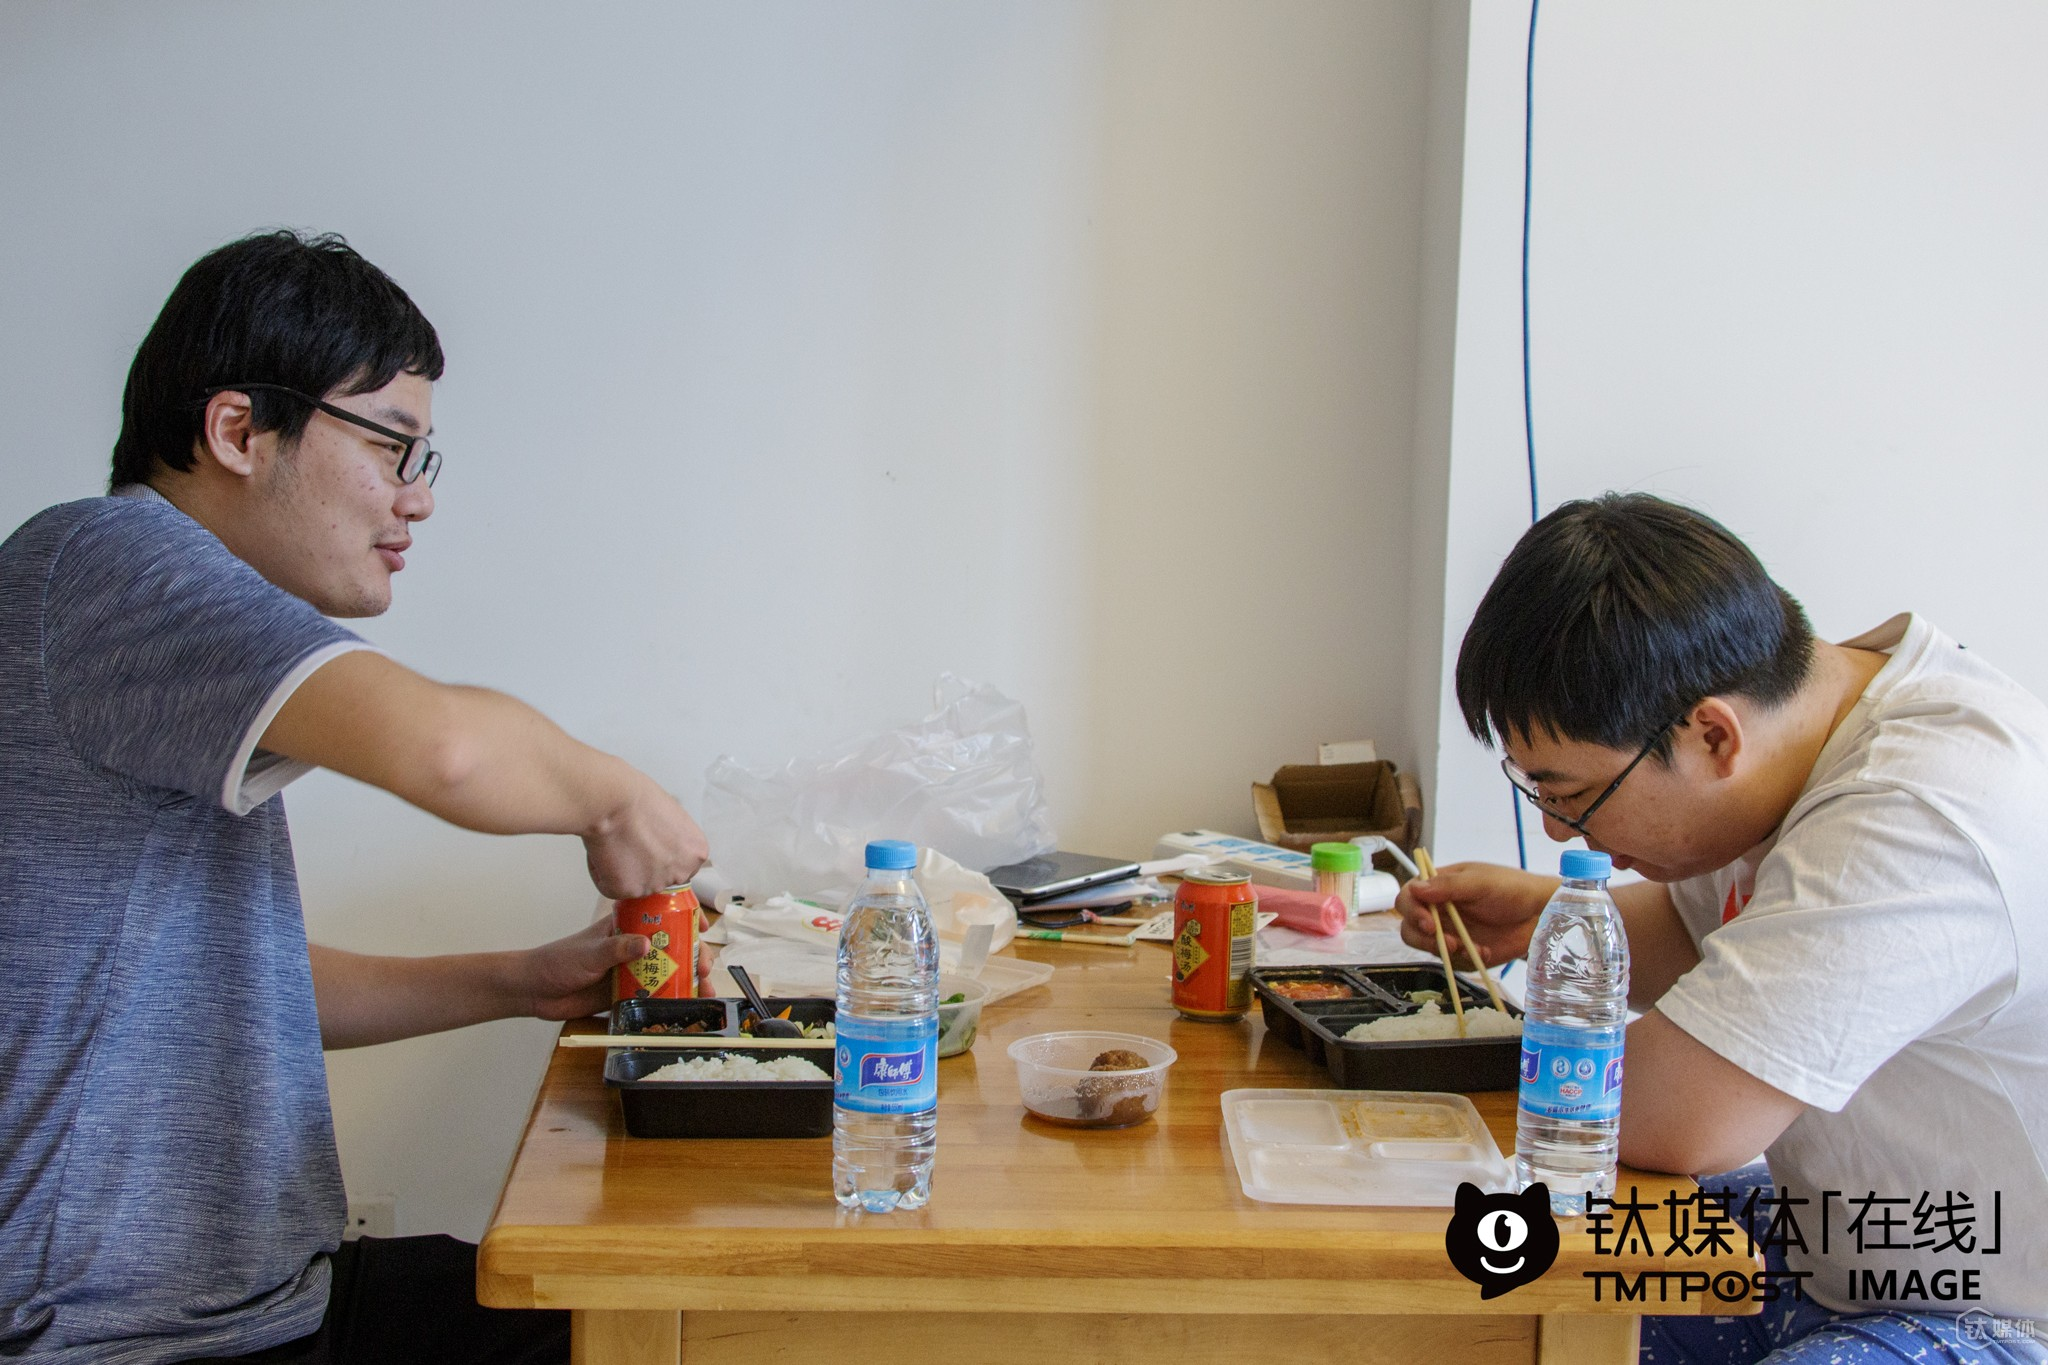 "Xiaoyang and Junwushuang ordered takeaways for lunch. ""Other members of our team stayed up last night, so they are still trying to catch some sleep. As professional game players, it's common for us to have irregular rest. Generally we have two meals every day, both by ordering takeaway food,"" he told TMTpost. During the official contest held on July, 23rd, they failed to get a good grade. For that contest, over 500 game players competed for the championship to win RMB 360,000 ($54,044) as reward. According to official statistics, the reward volume for electronic sports around the world totaled $61million in 2015. At the same time, the overall revenue in the Chinese game industry reached over RMB 149 billion (around $21billion) in 2015."